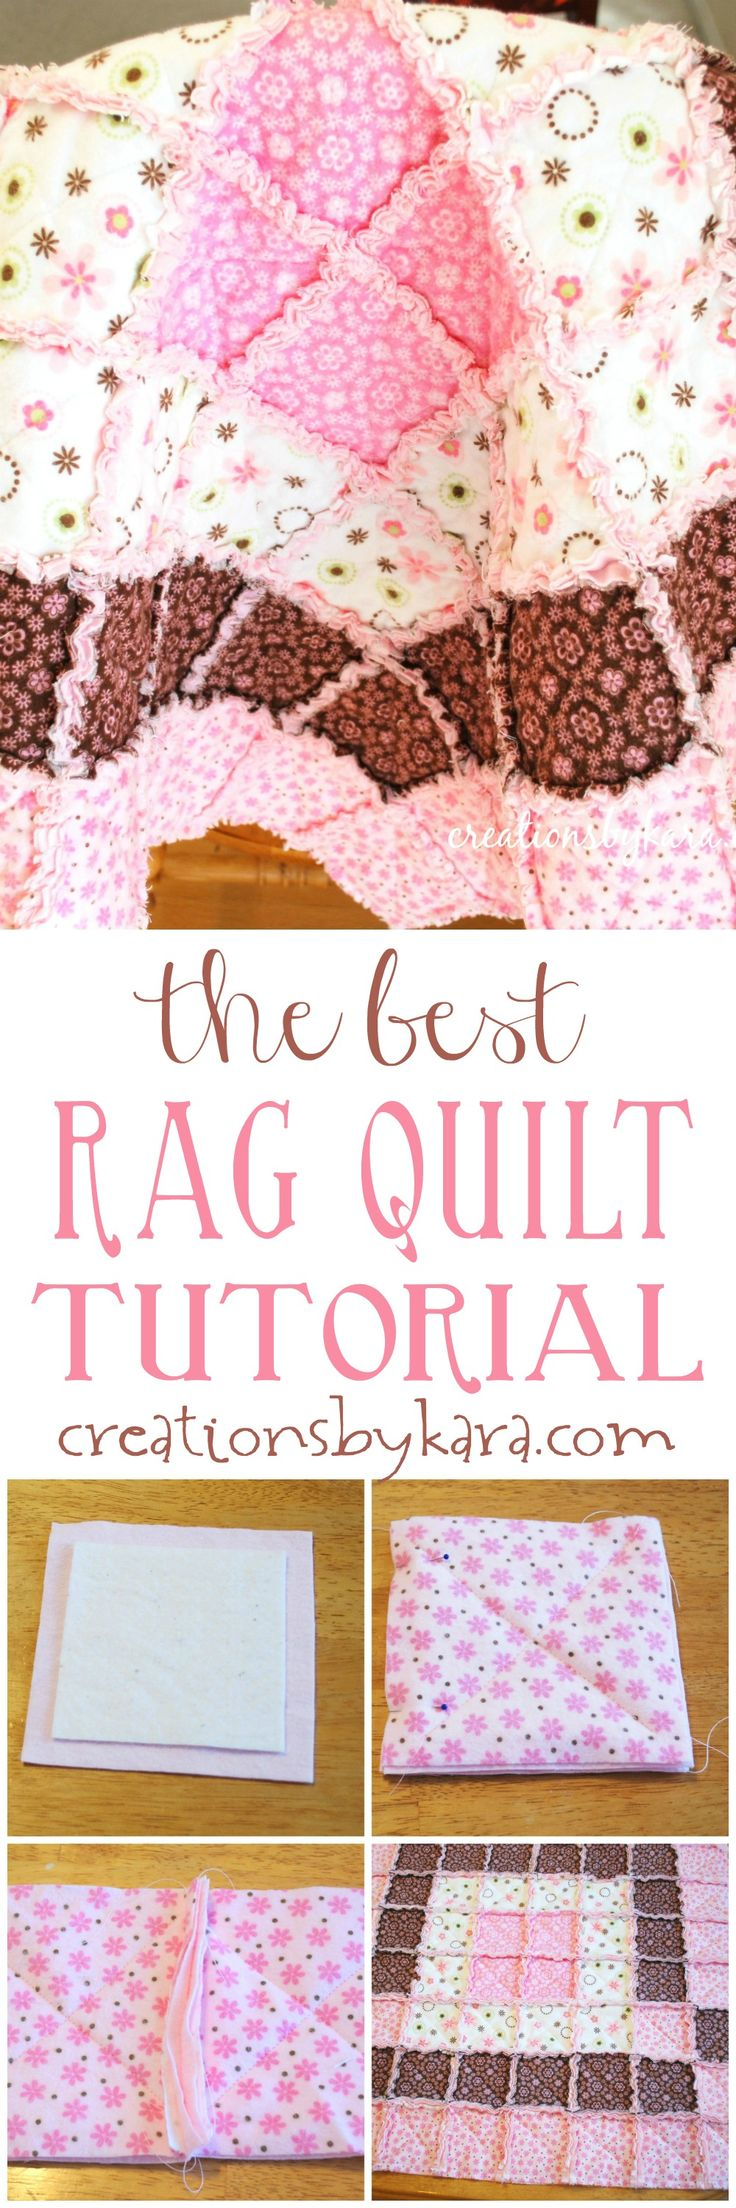 17 Best images about Quilts For All on Pinterest Antique quilts, Jelly rolls and Log cabin quilts